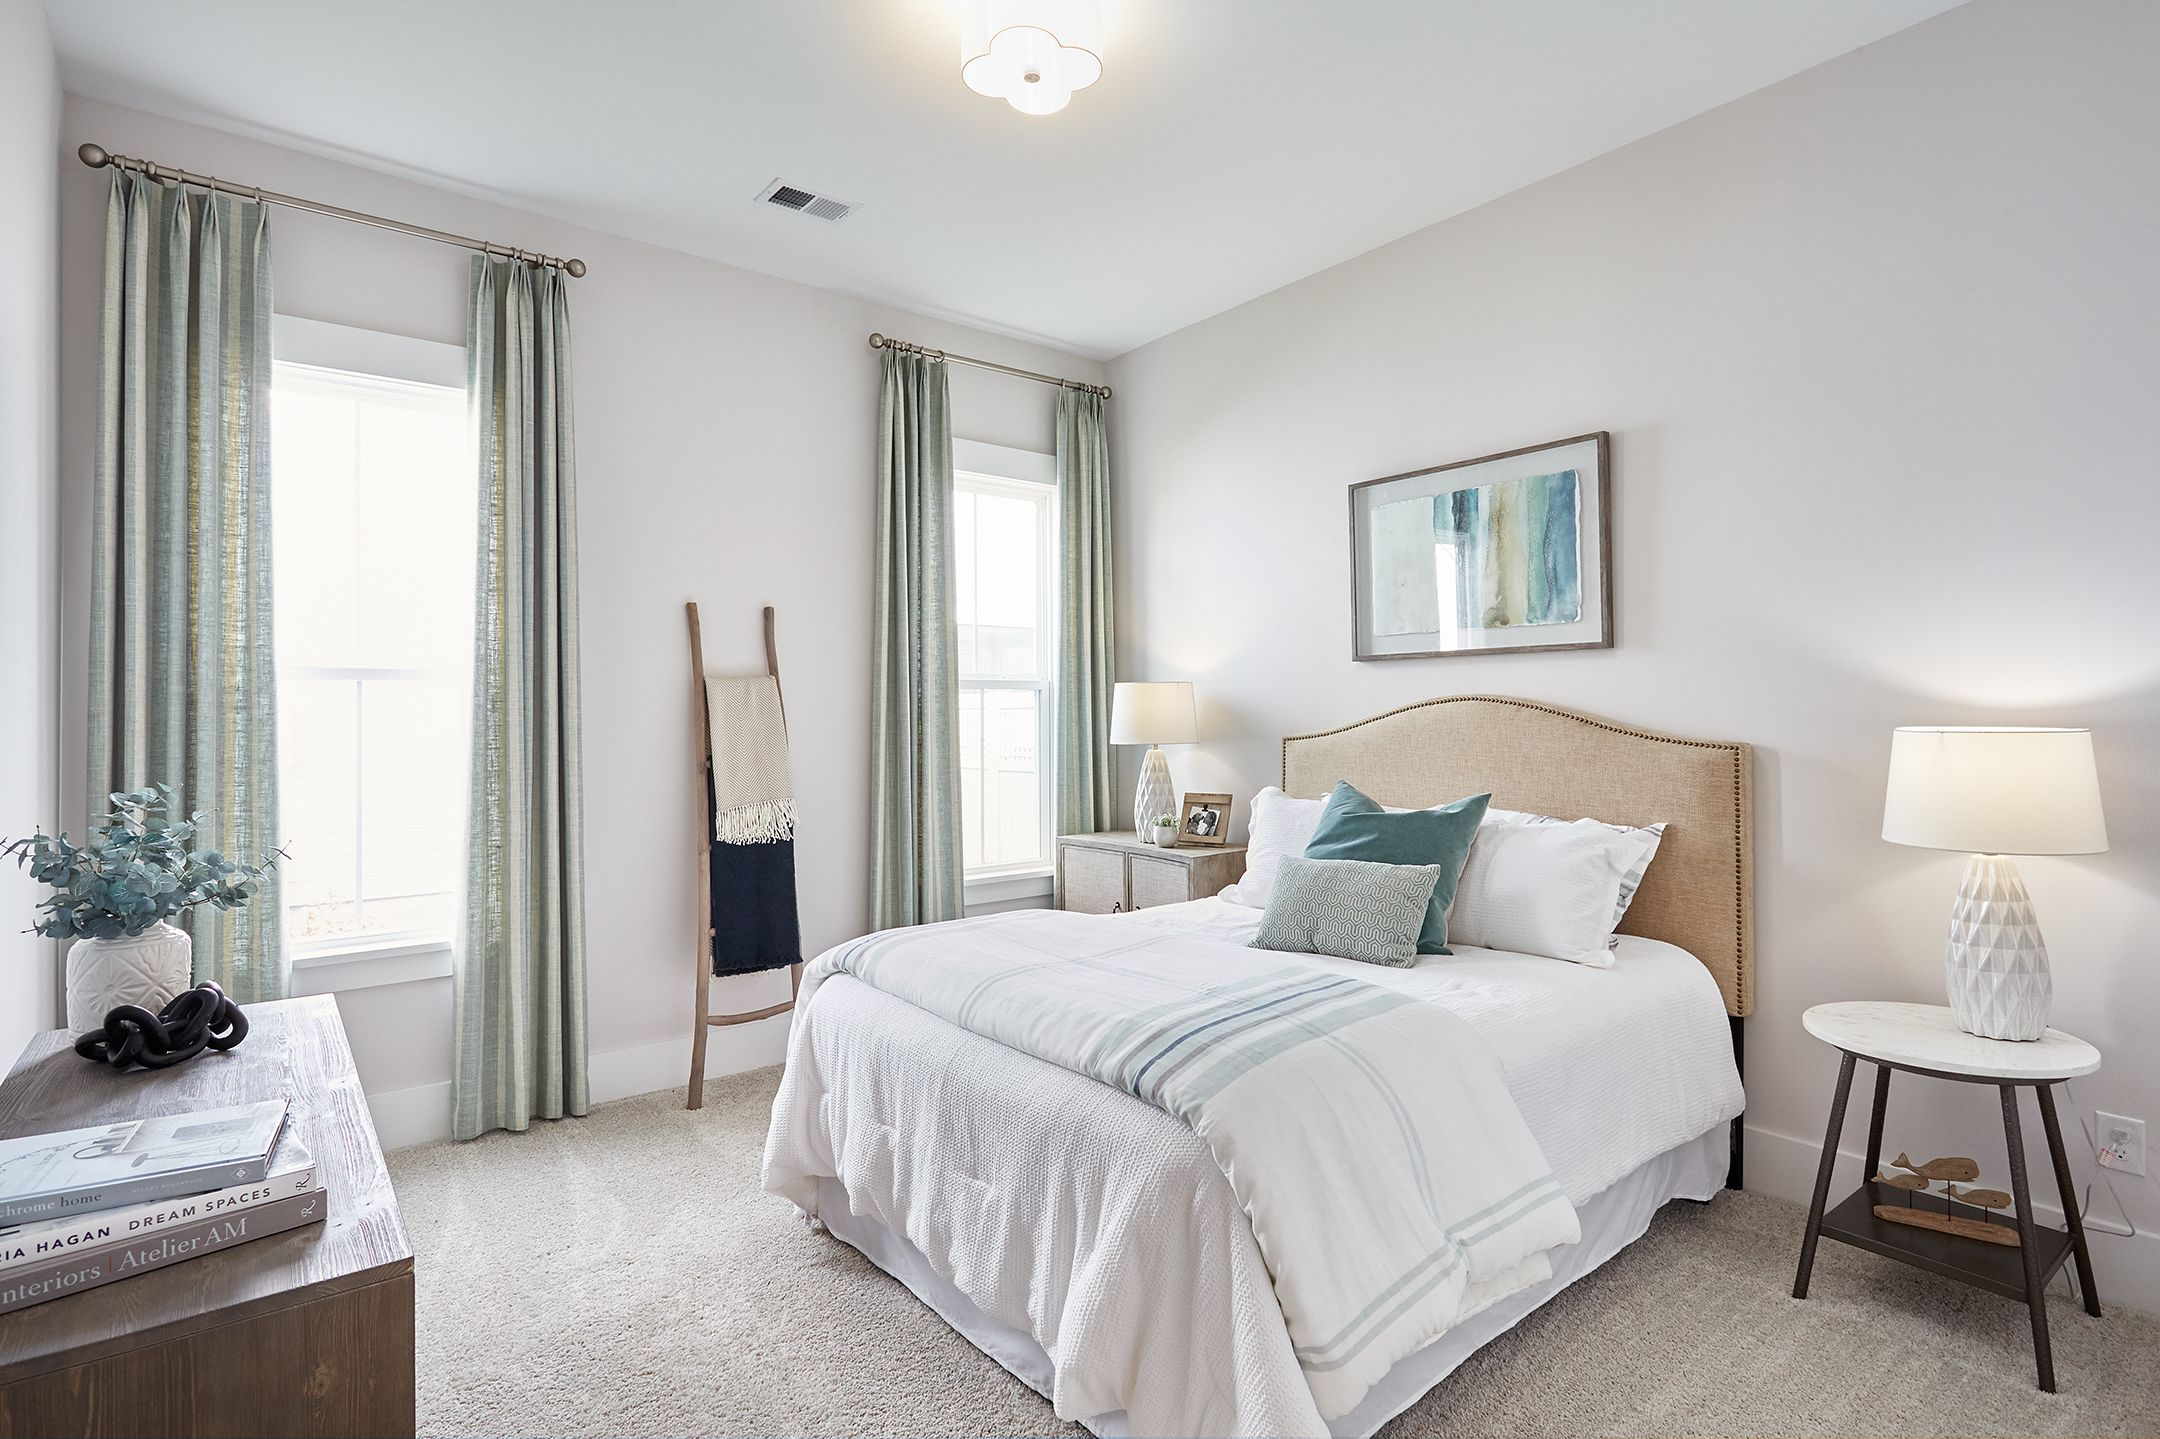 Bedroom featured in the Hutchinson By Homes by Dickerson in Charleston, SC